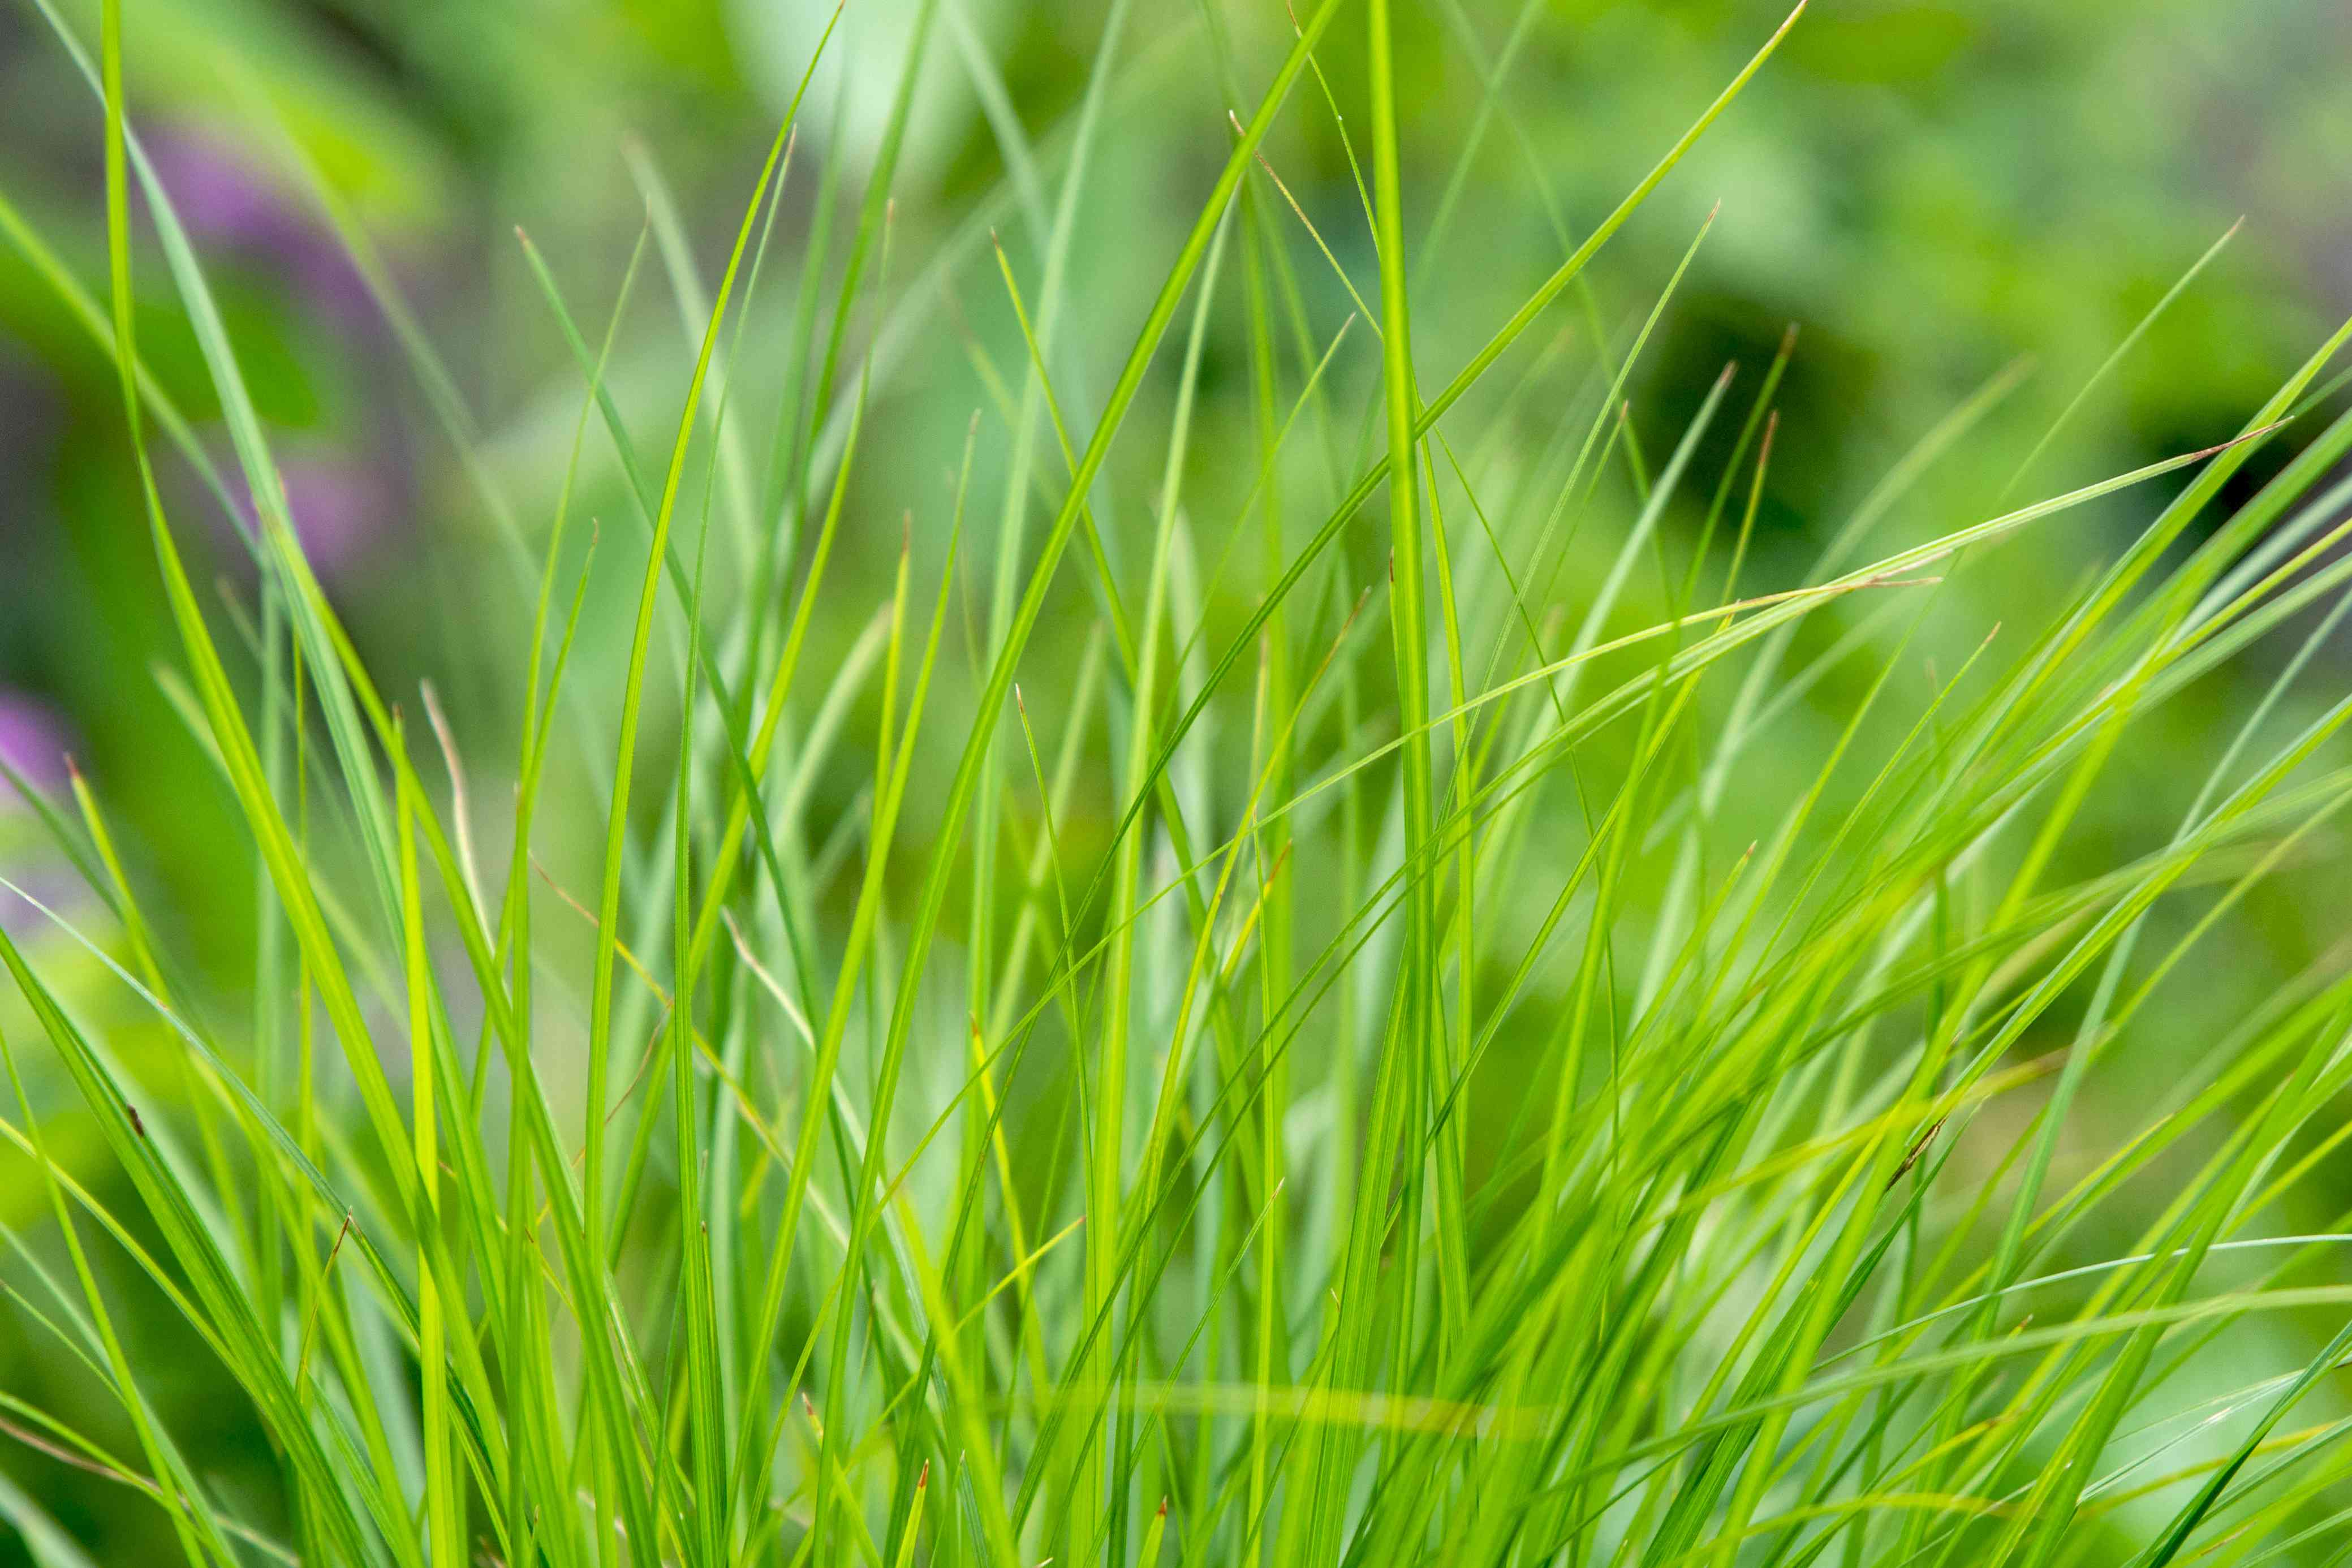 Tussock sedge with thin grass-like leaves clumped together closeup